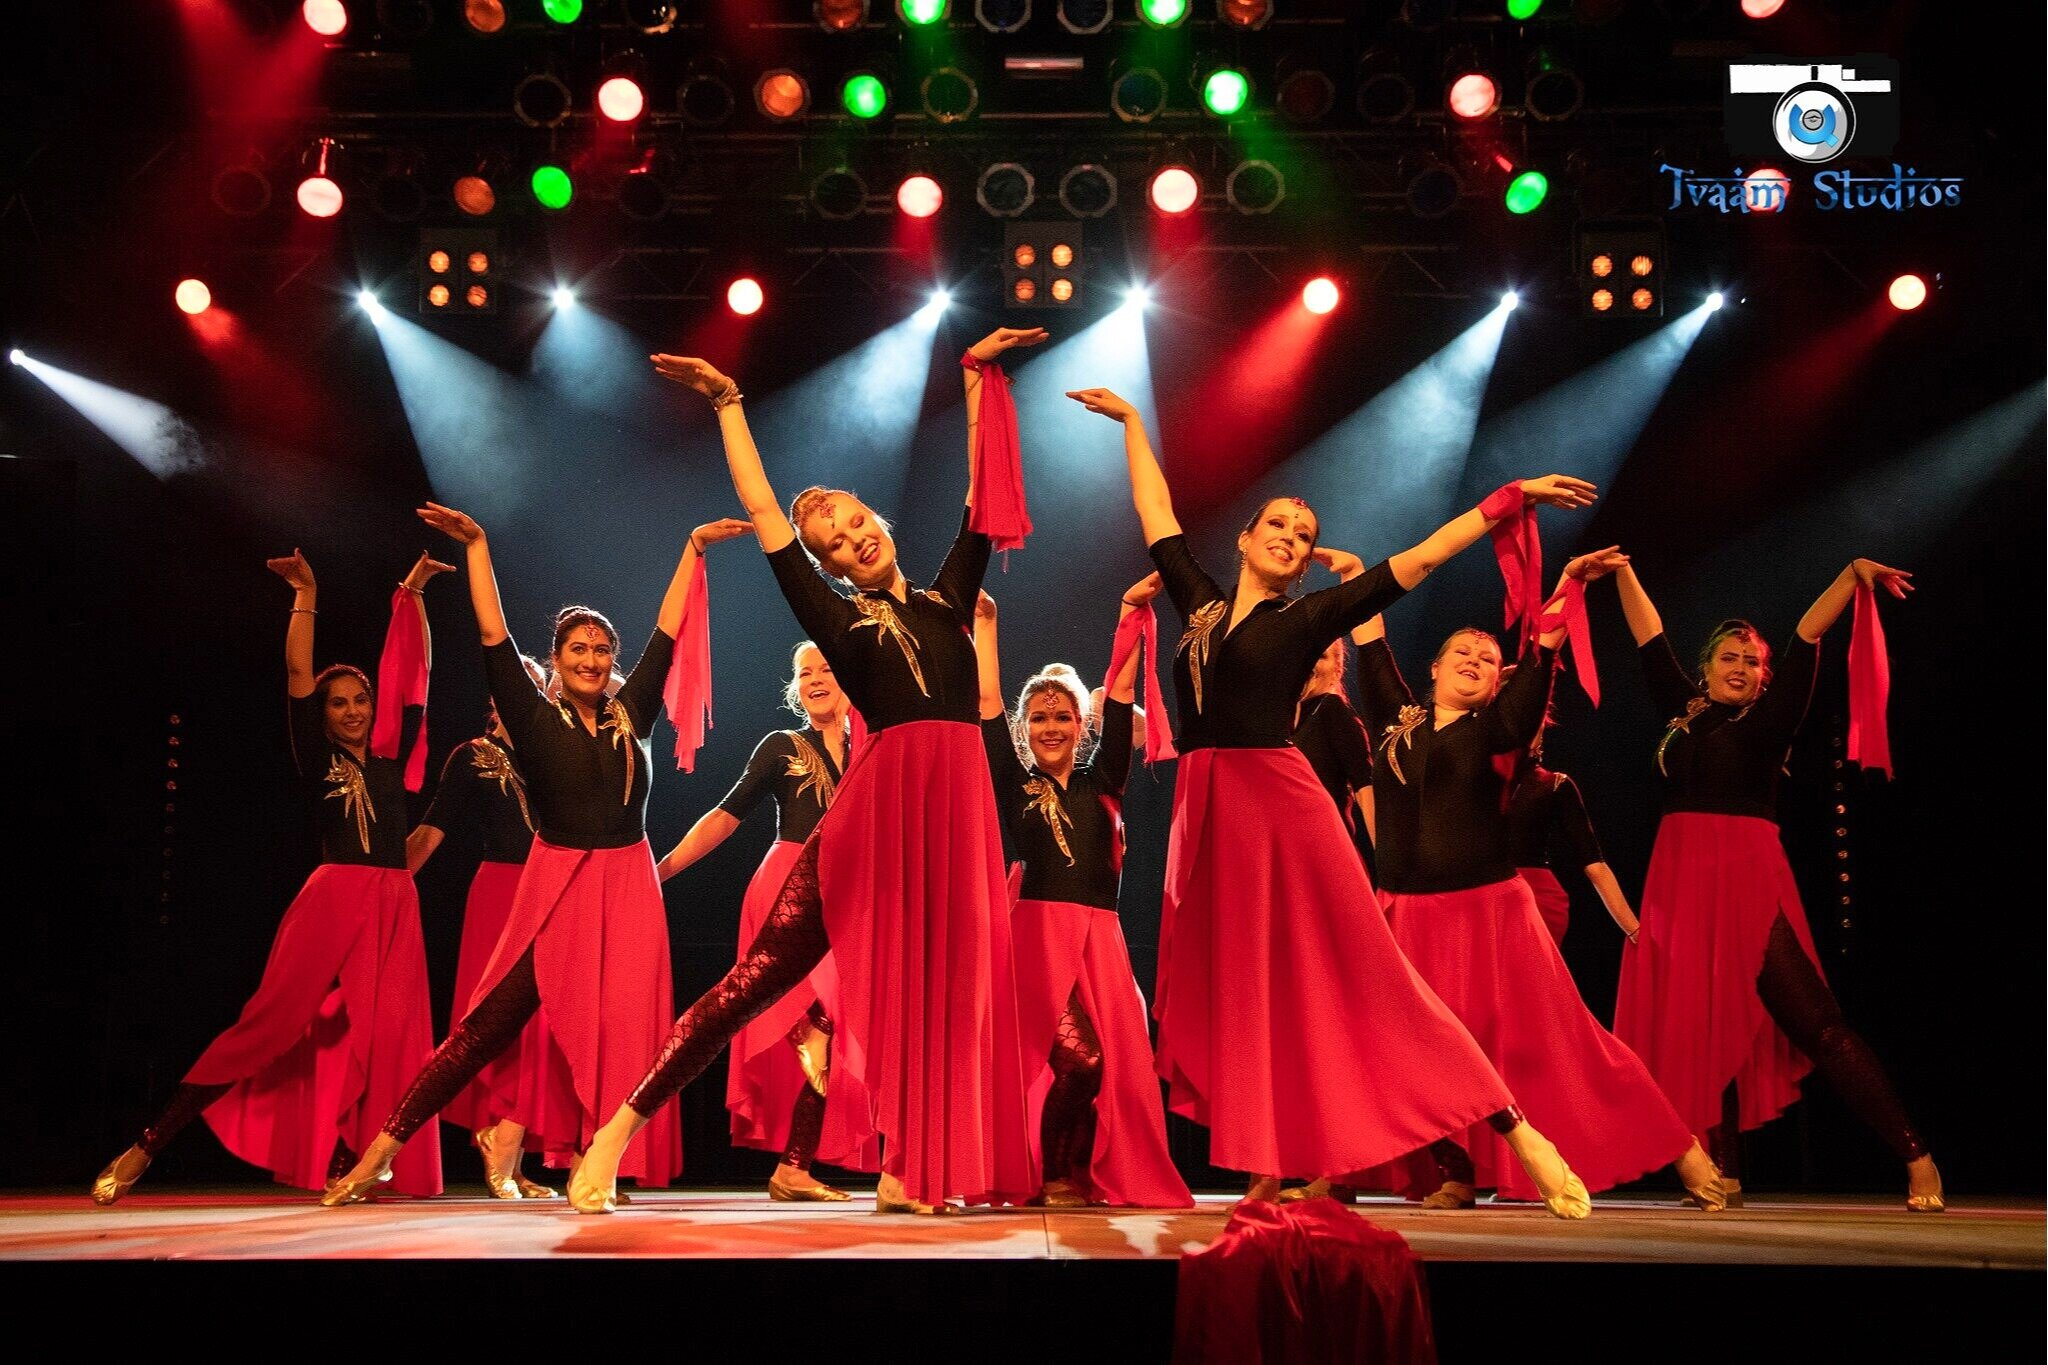 Kati Mikkonen performing at Indian Dance Festival with Bollywood ladies crew